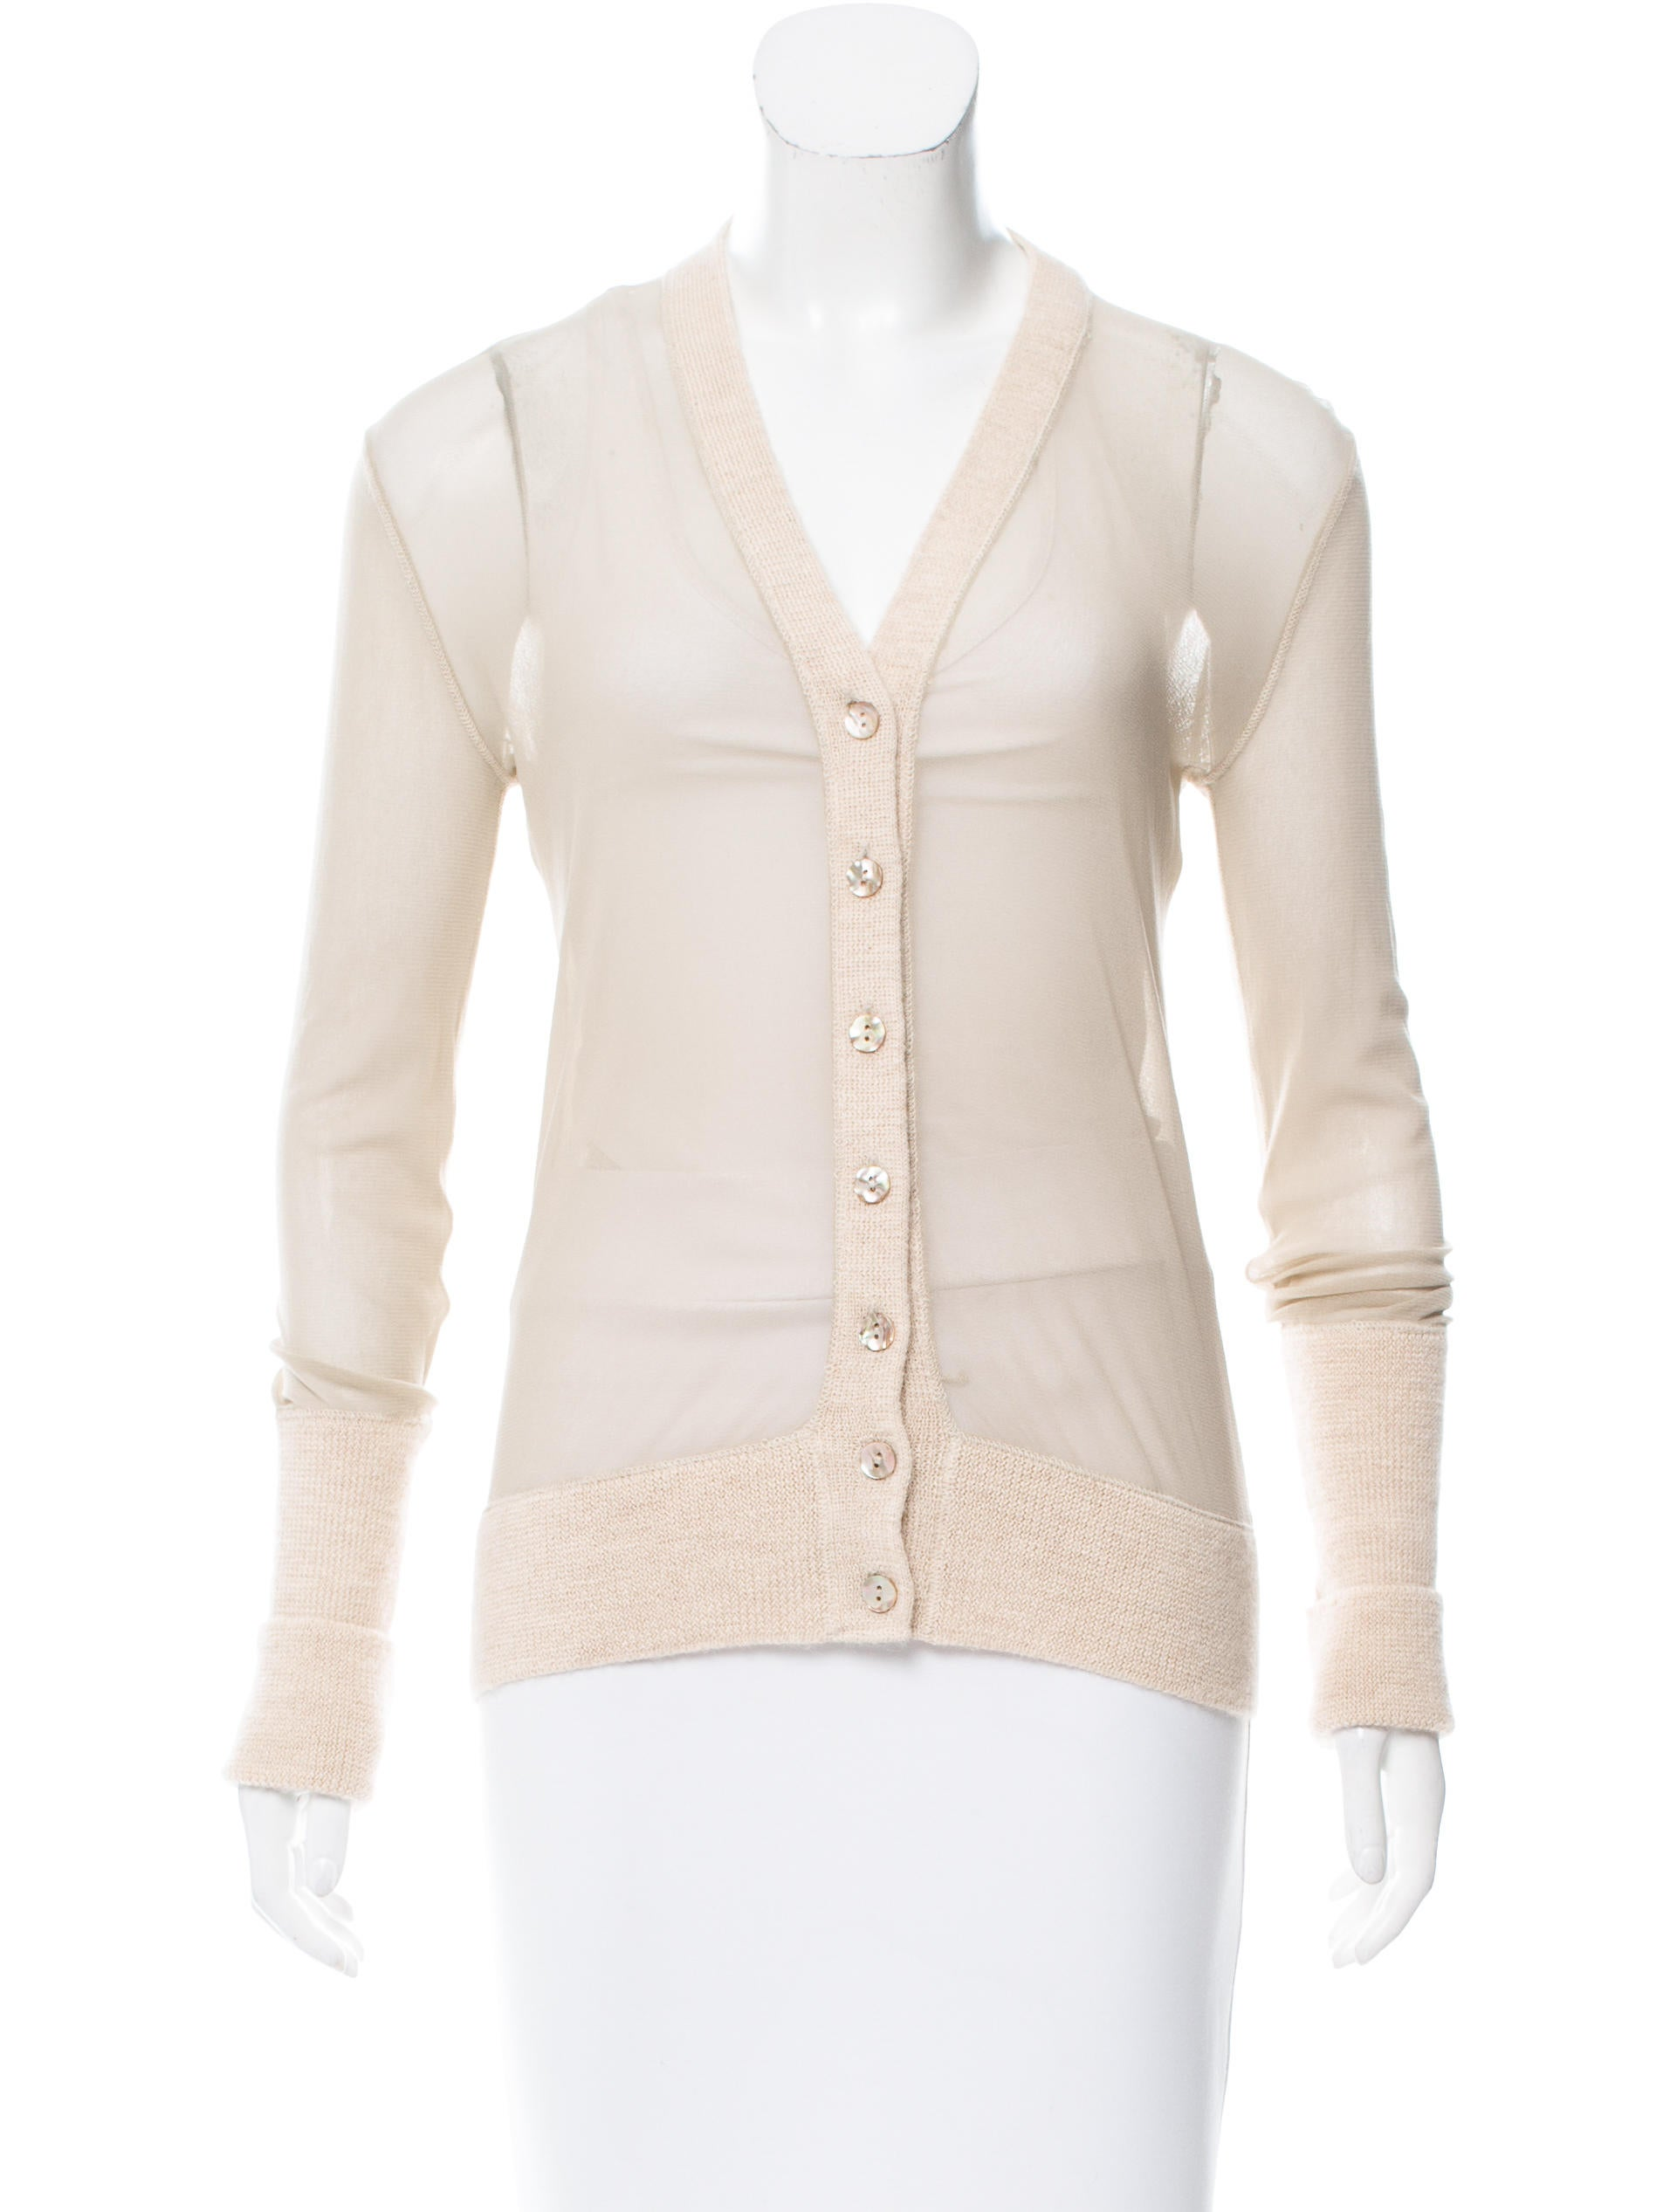 Jean Paul Gaultier Sheer Long Sleeve Cardigan - Clothing ...